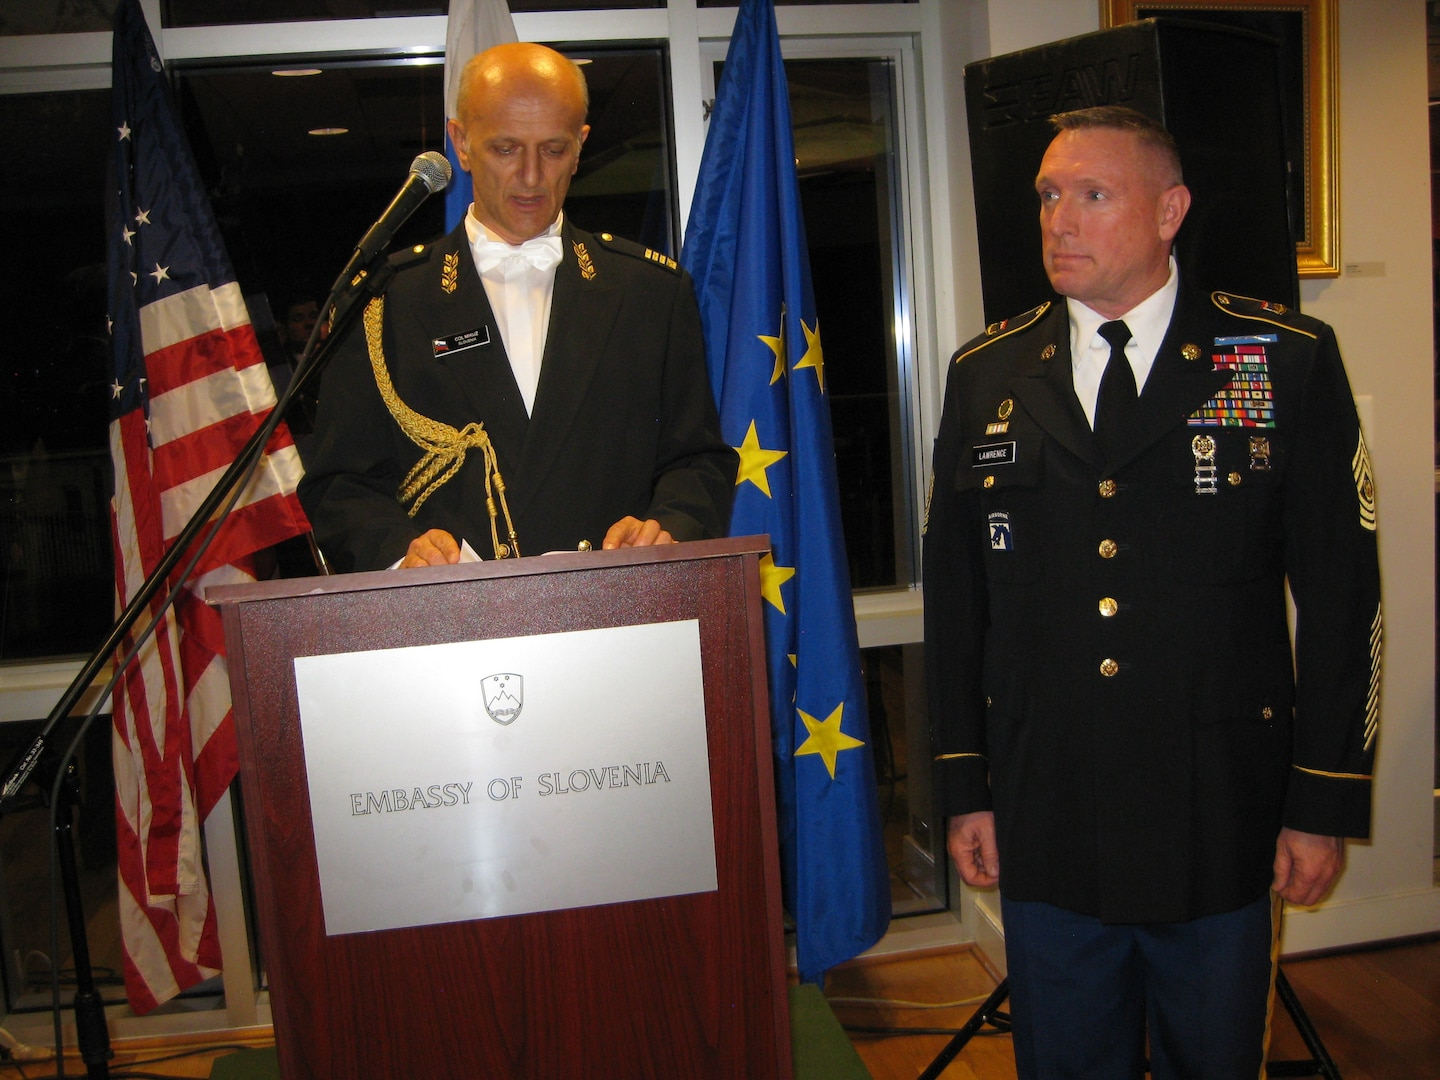 ​Slovenian Defense Attaché Col.  Ivan Mikuz awards Colorado National Guard Senior Enlisted Leader Command Sgt. Maj. Michael R. Lawrence the medal for multinational cooperation at the Embassy of the Republic of Slovenia June 23, 2015.  Lawrence has spent two decades helping build the partnership between Slovenia and Colorado as part of the National Guard State Partnership Program. (U.S. Air Force photo by Maj. Elena O'Bryan/Released)